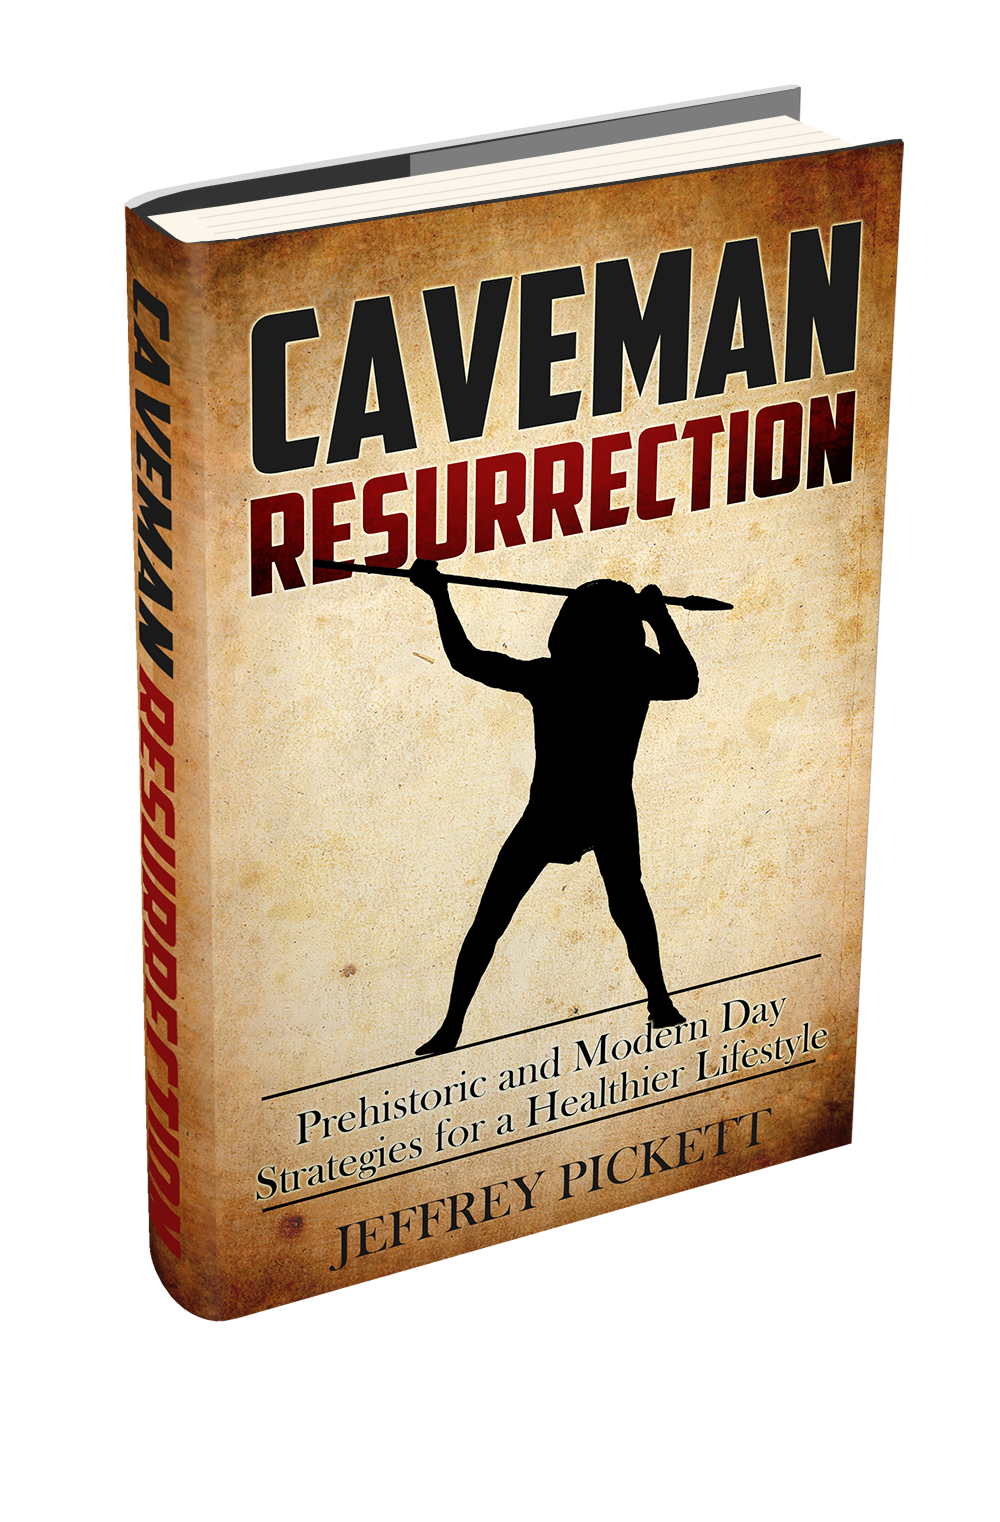 caveman resurrection book